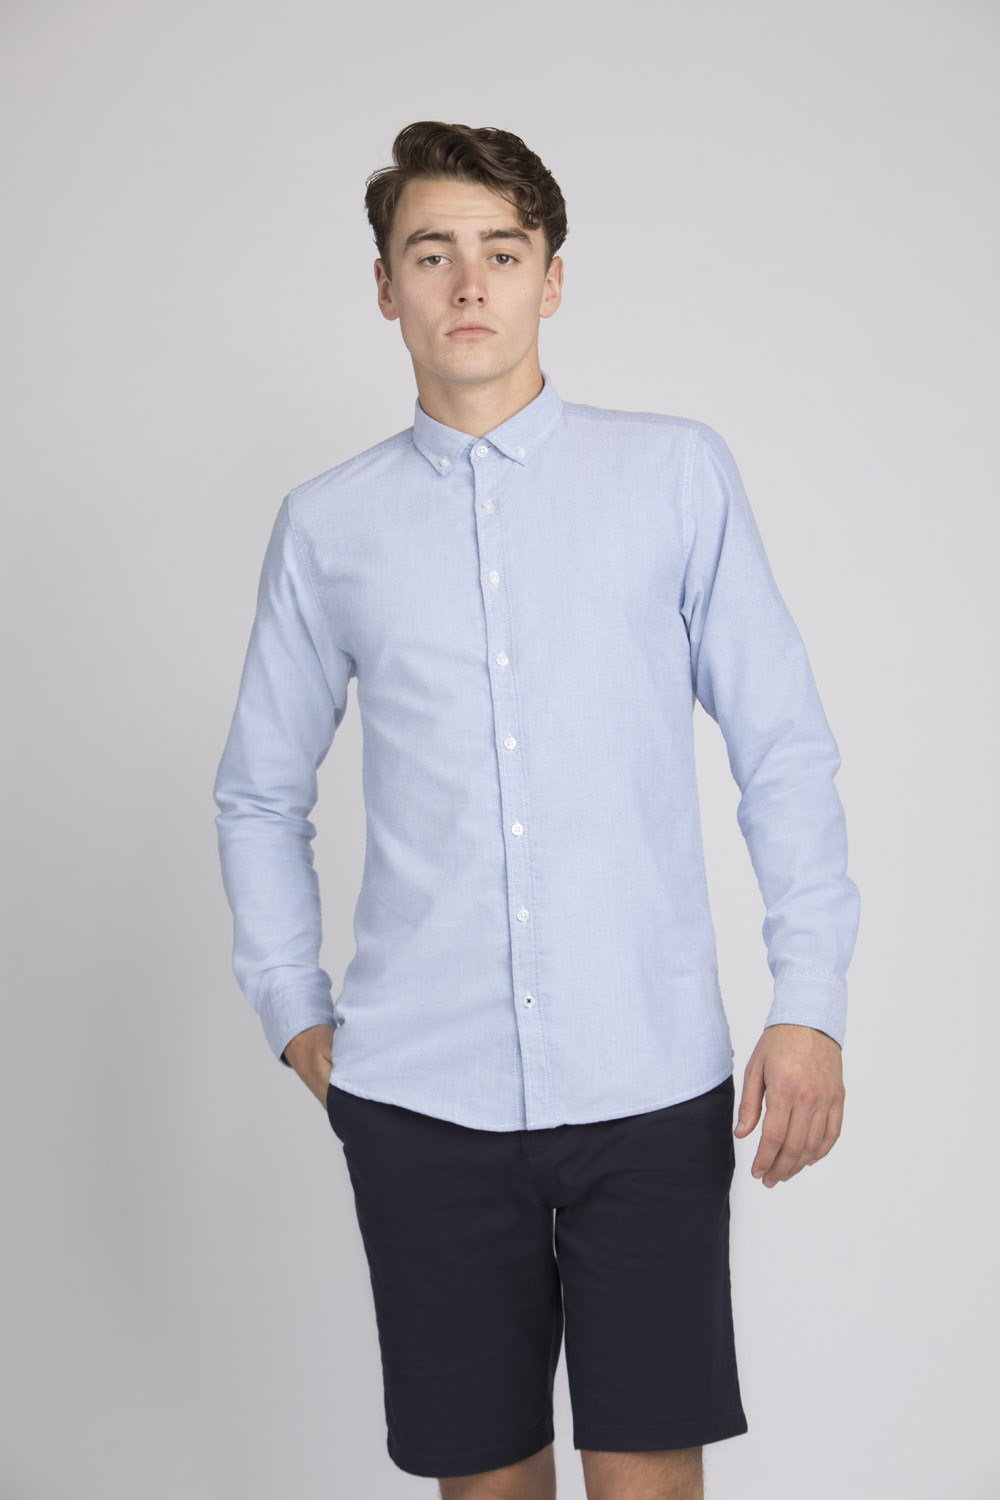 ed3a7c5365f FR502 SUPERSOFT CASUAL SHIRT – Front Row & Co